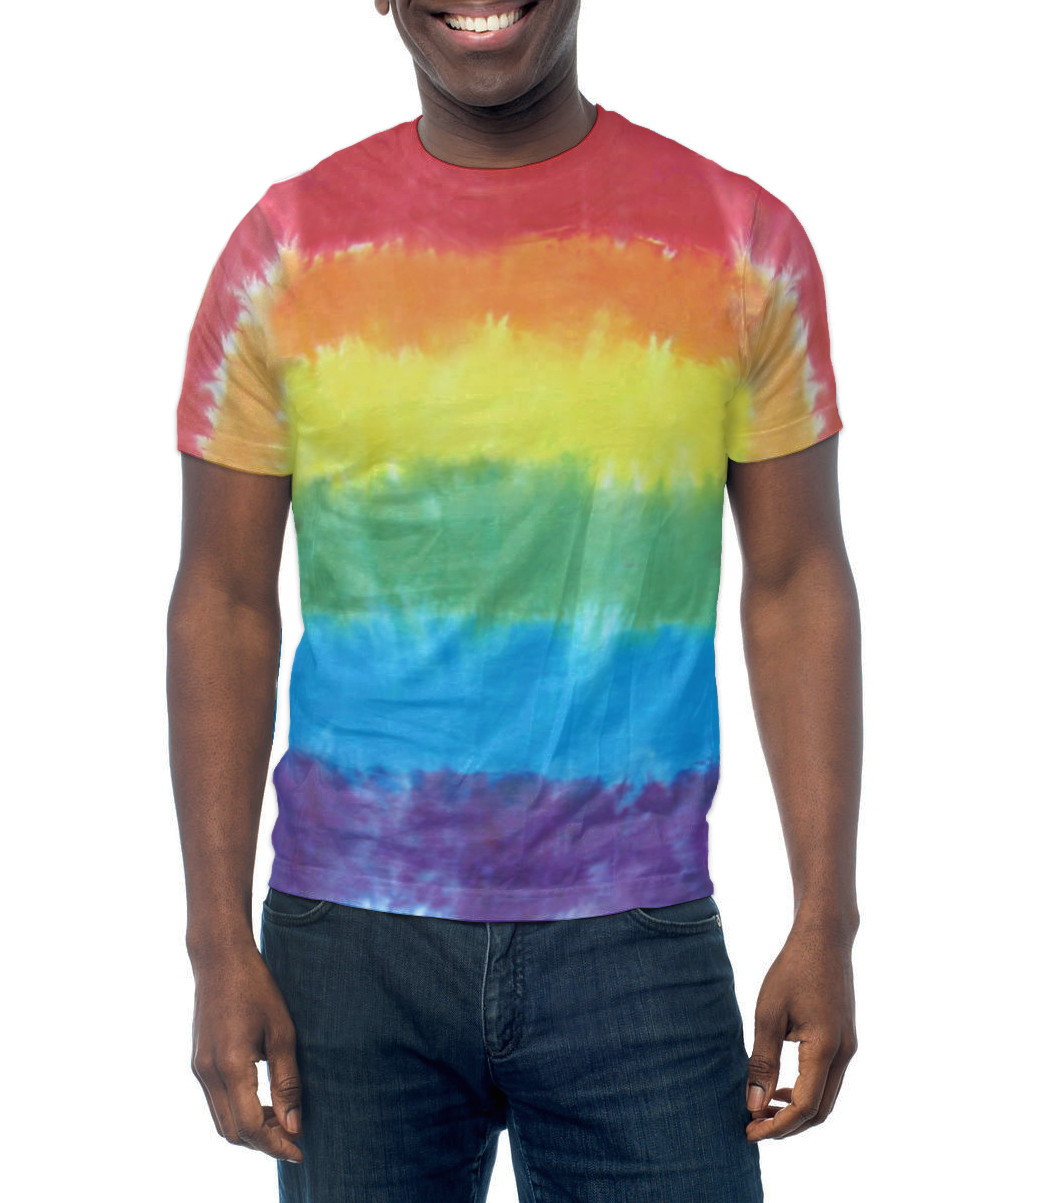 Rainbow Flag Tie Dye T-Shirt – Handmade & Unique – LGBT Lesbian and Gay Pride Apparel and Clothes. LGBT Gay Pride T-Shirt Pride Clothing